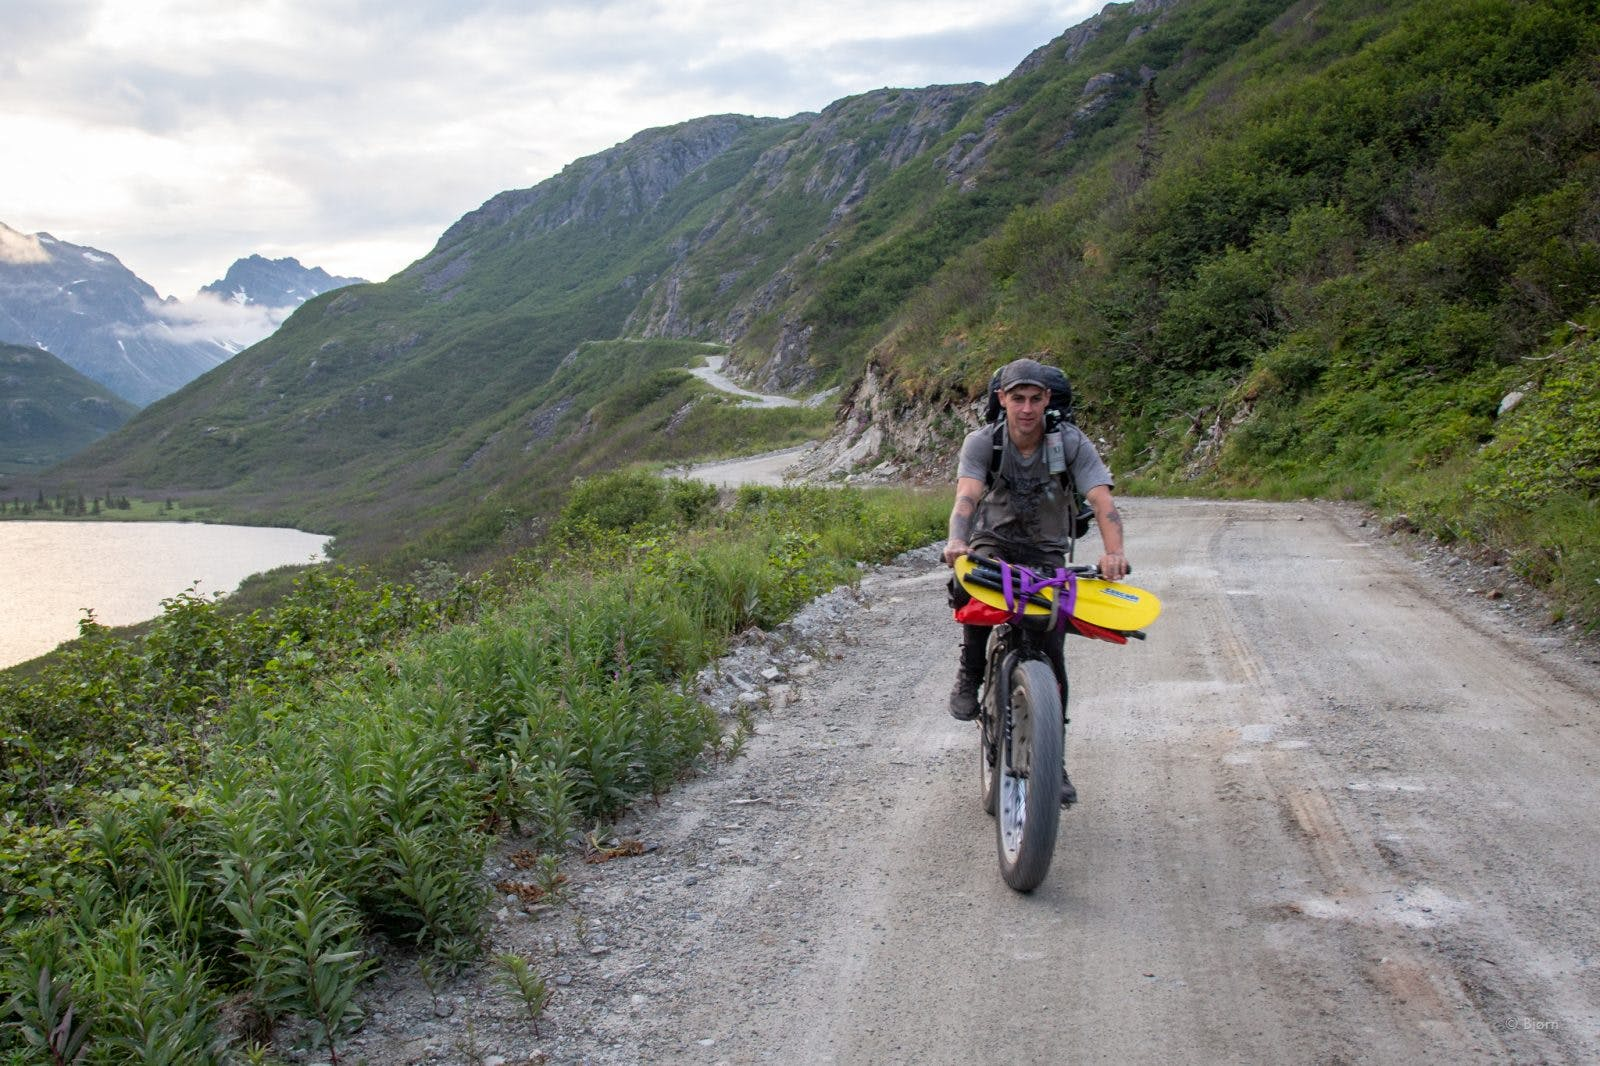 Brent biking the Pile Bay-Williamsport Road from Cook Inlet to Lake Iliamna.